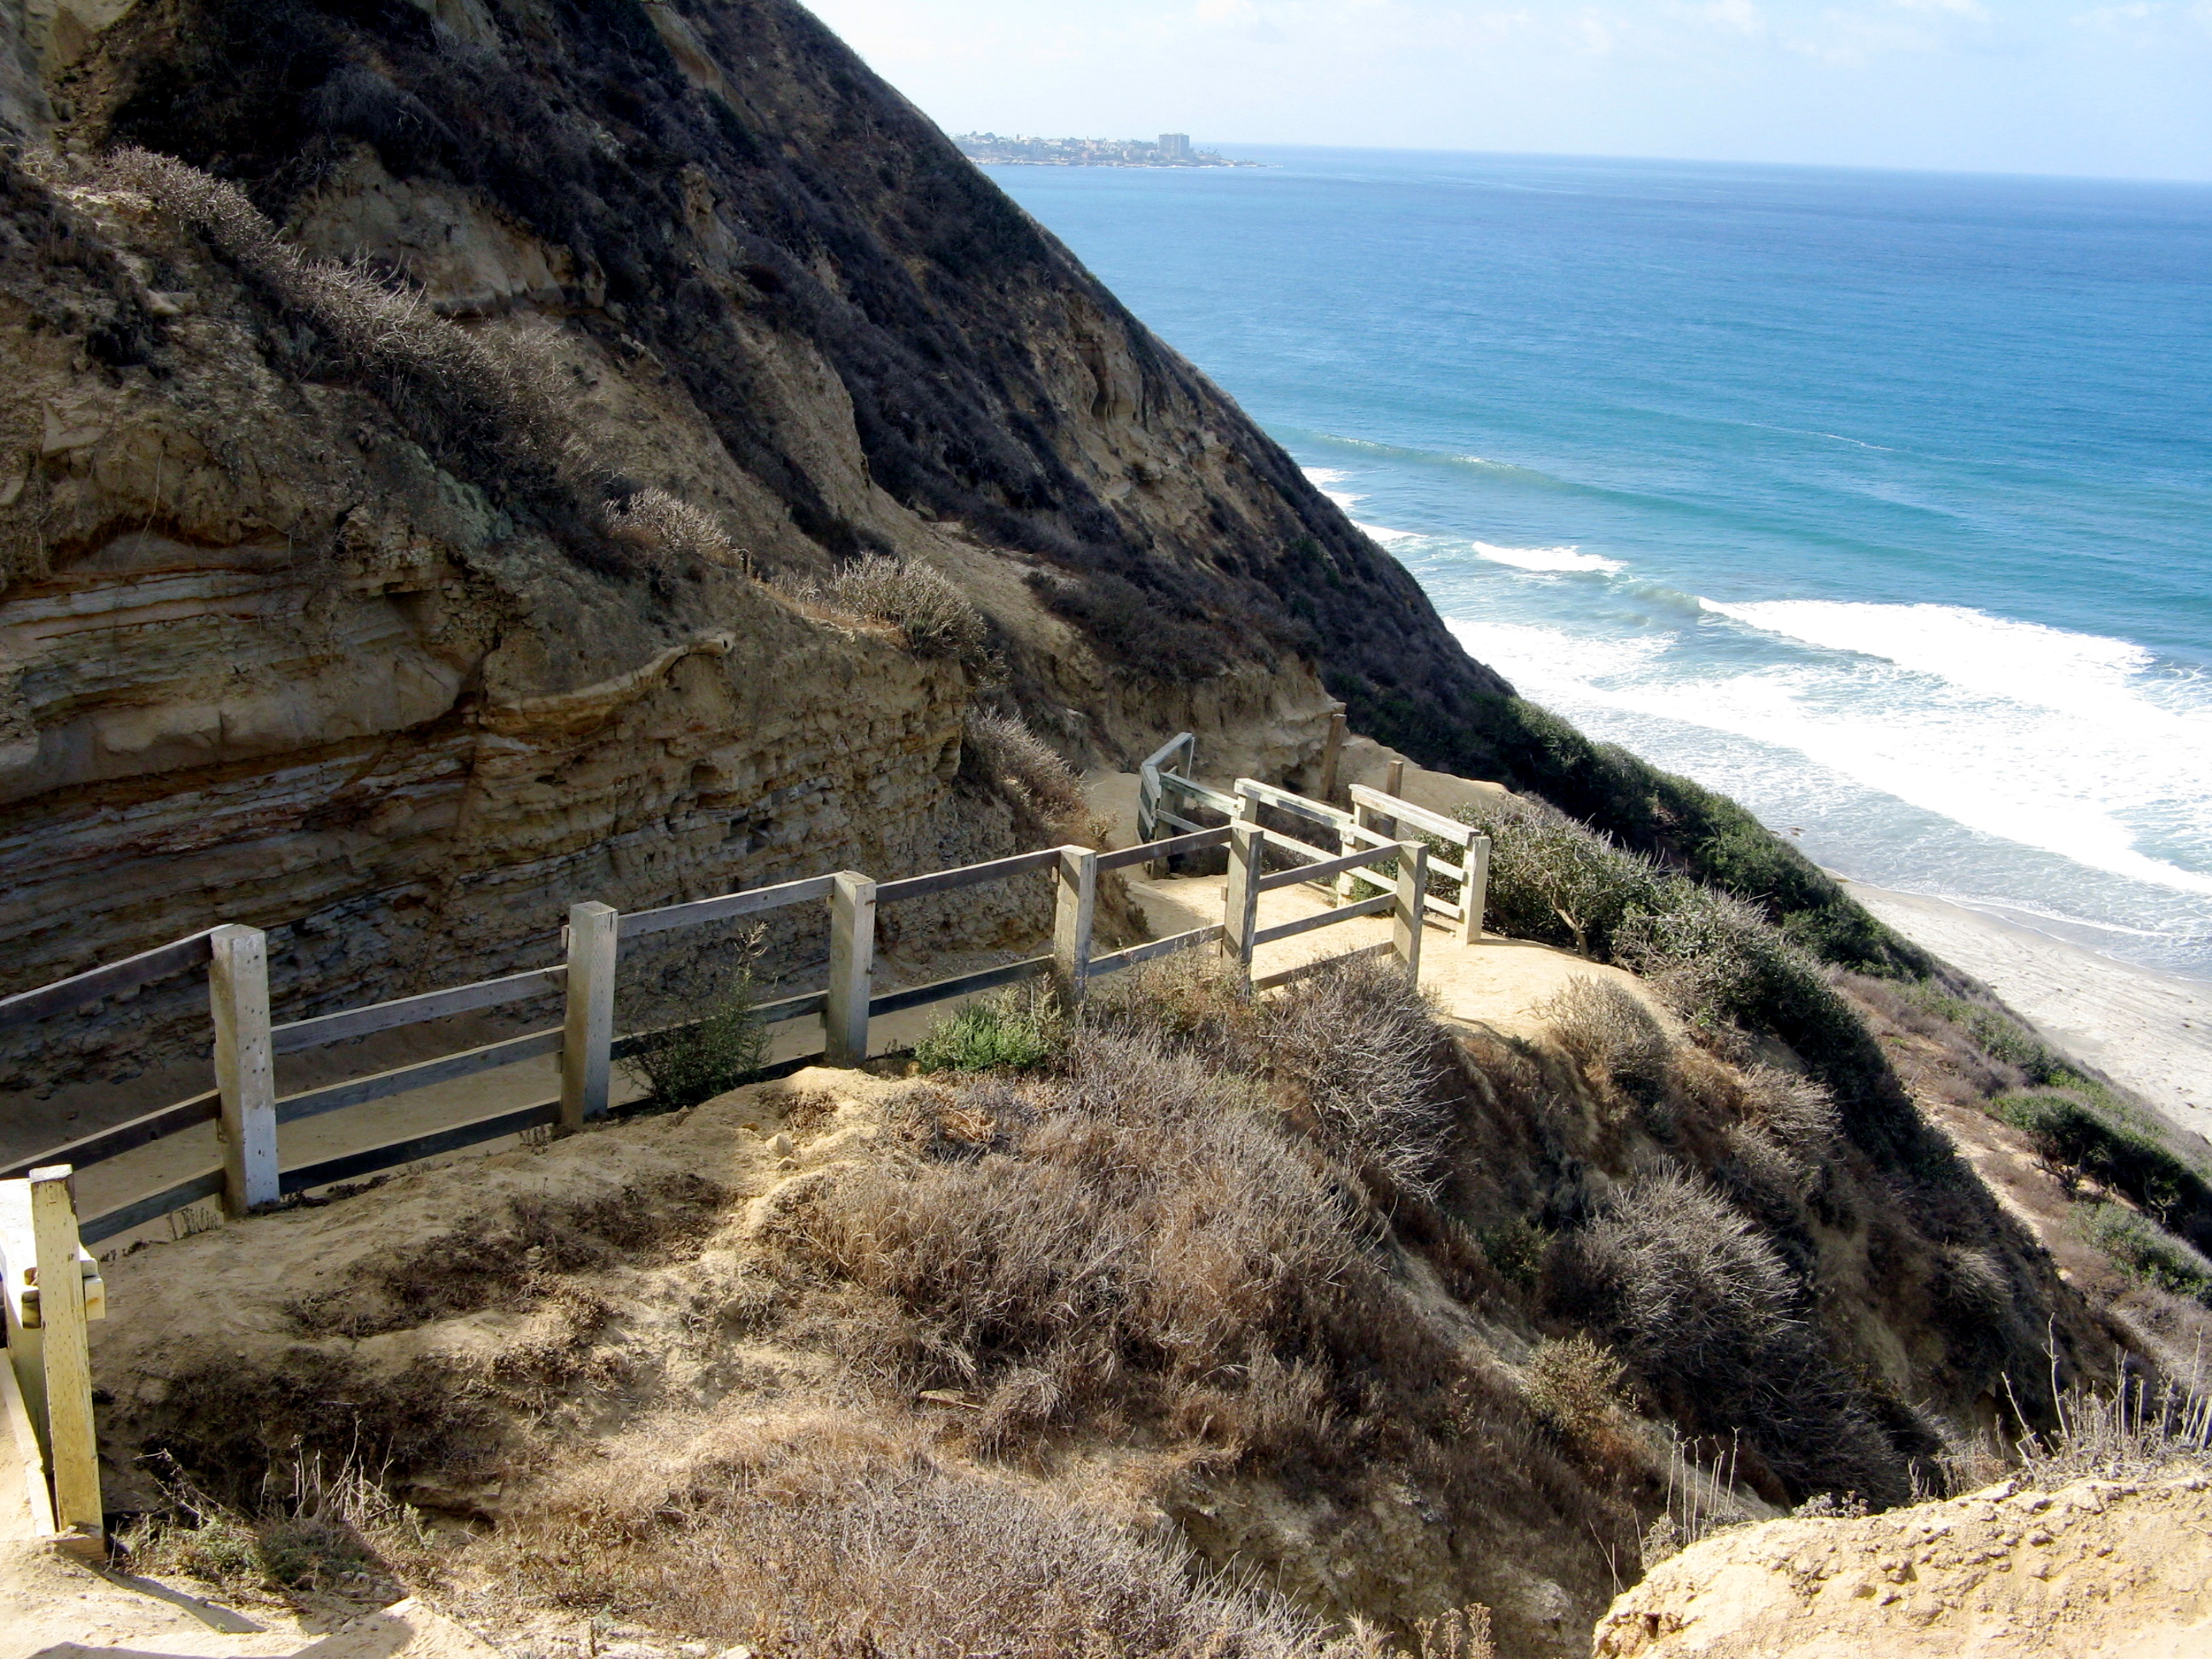 Stunning views of the Pacific Ocean will be seen on this San Diego Running Tour